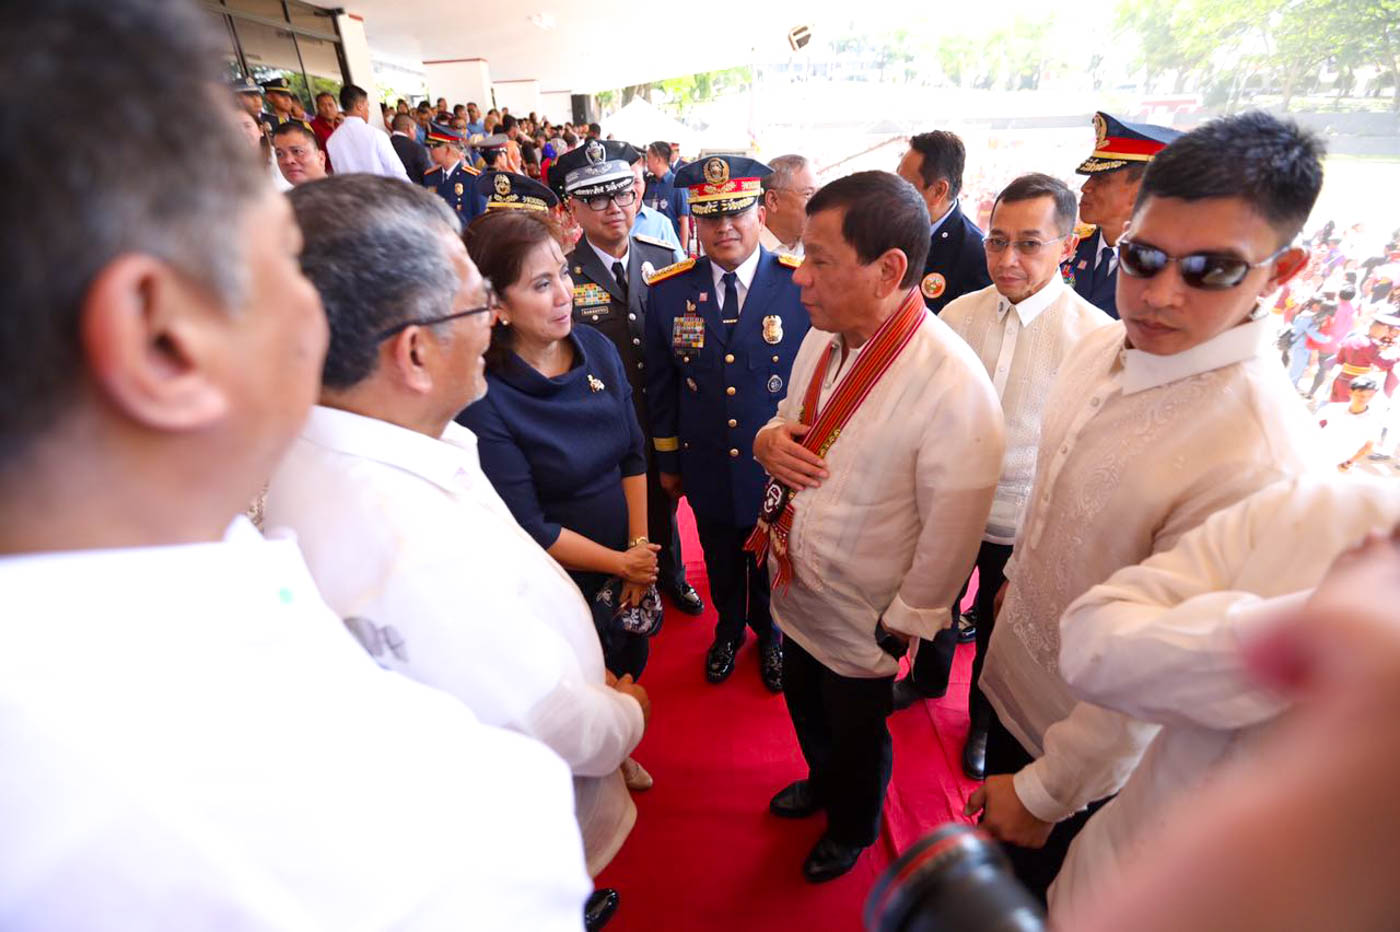 GREETINGS. President Rodrigo Duterte and Vice President Leni Robredo exchange pleasantries at the 38th Commencement Exercises of the Philippine National Police Academy Lcass 2017 in Silang, Cavite, on March 24, 2017. Photo from Office of the Vice President